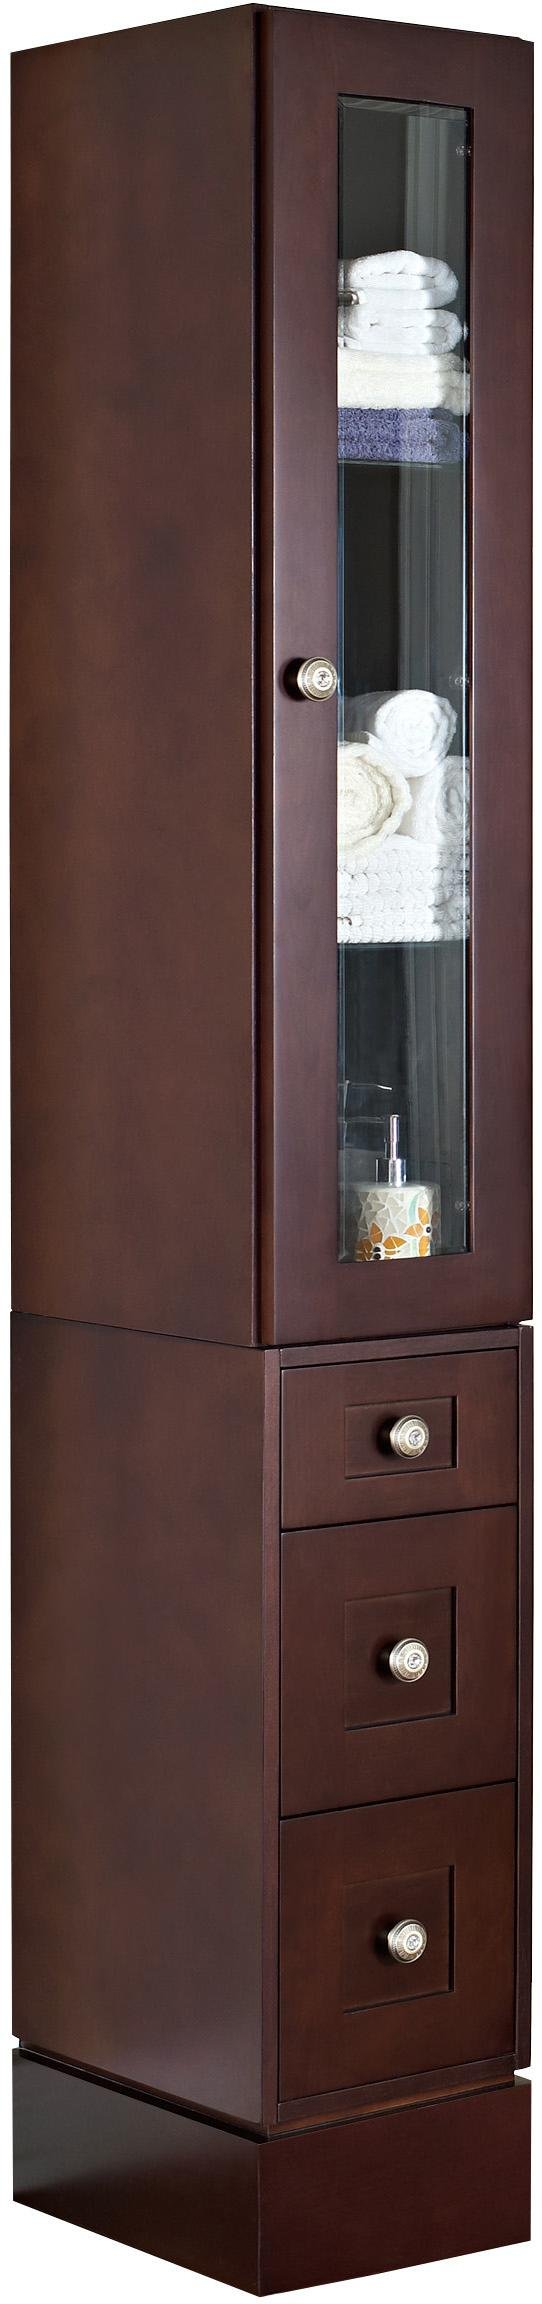 American Imaginations 564   12-Inch  Wide Solid Cherry Wood Linen Tower with Soft-Close Door and Drawers, Coffee Finish